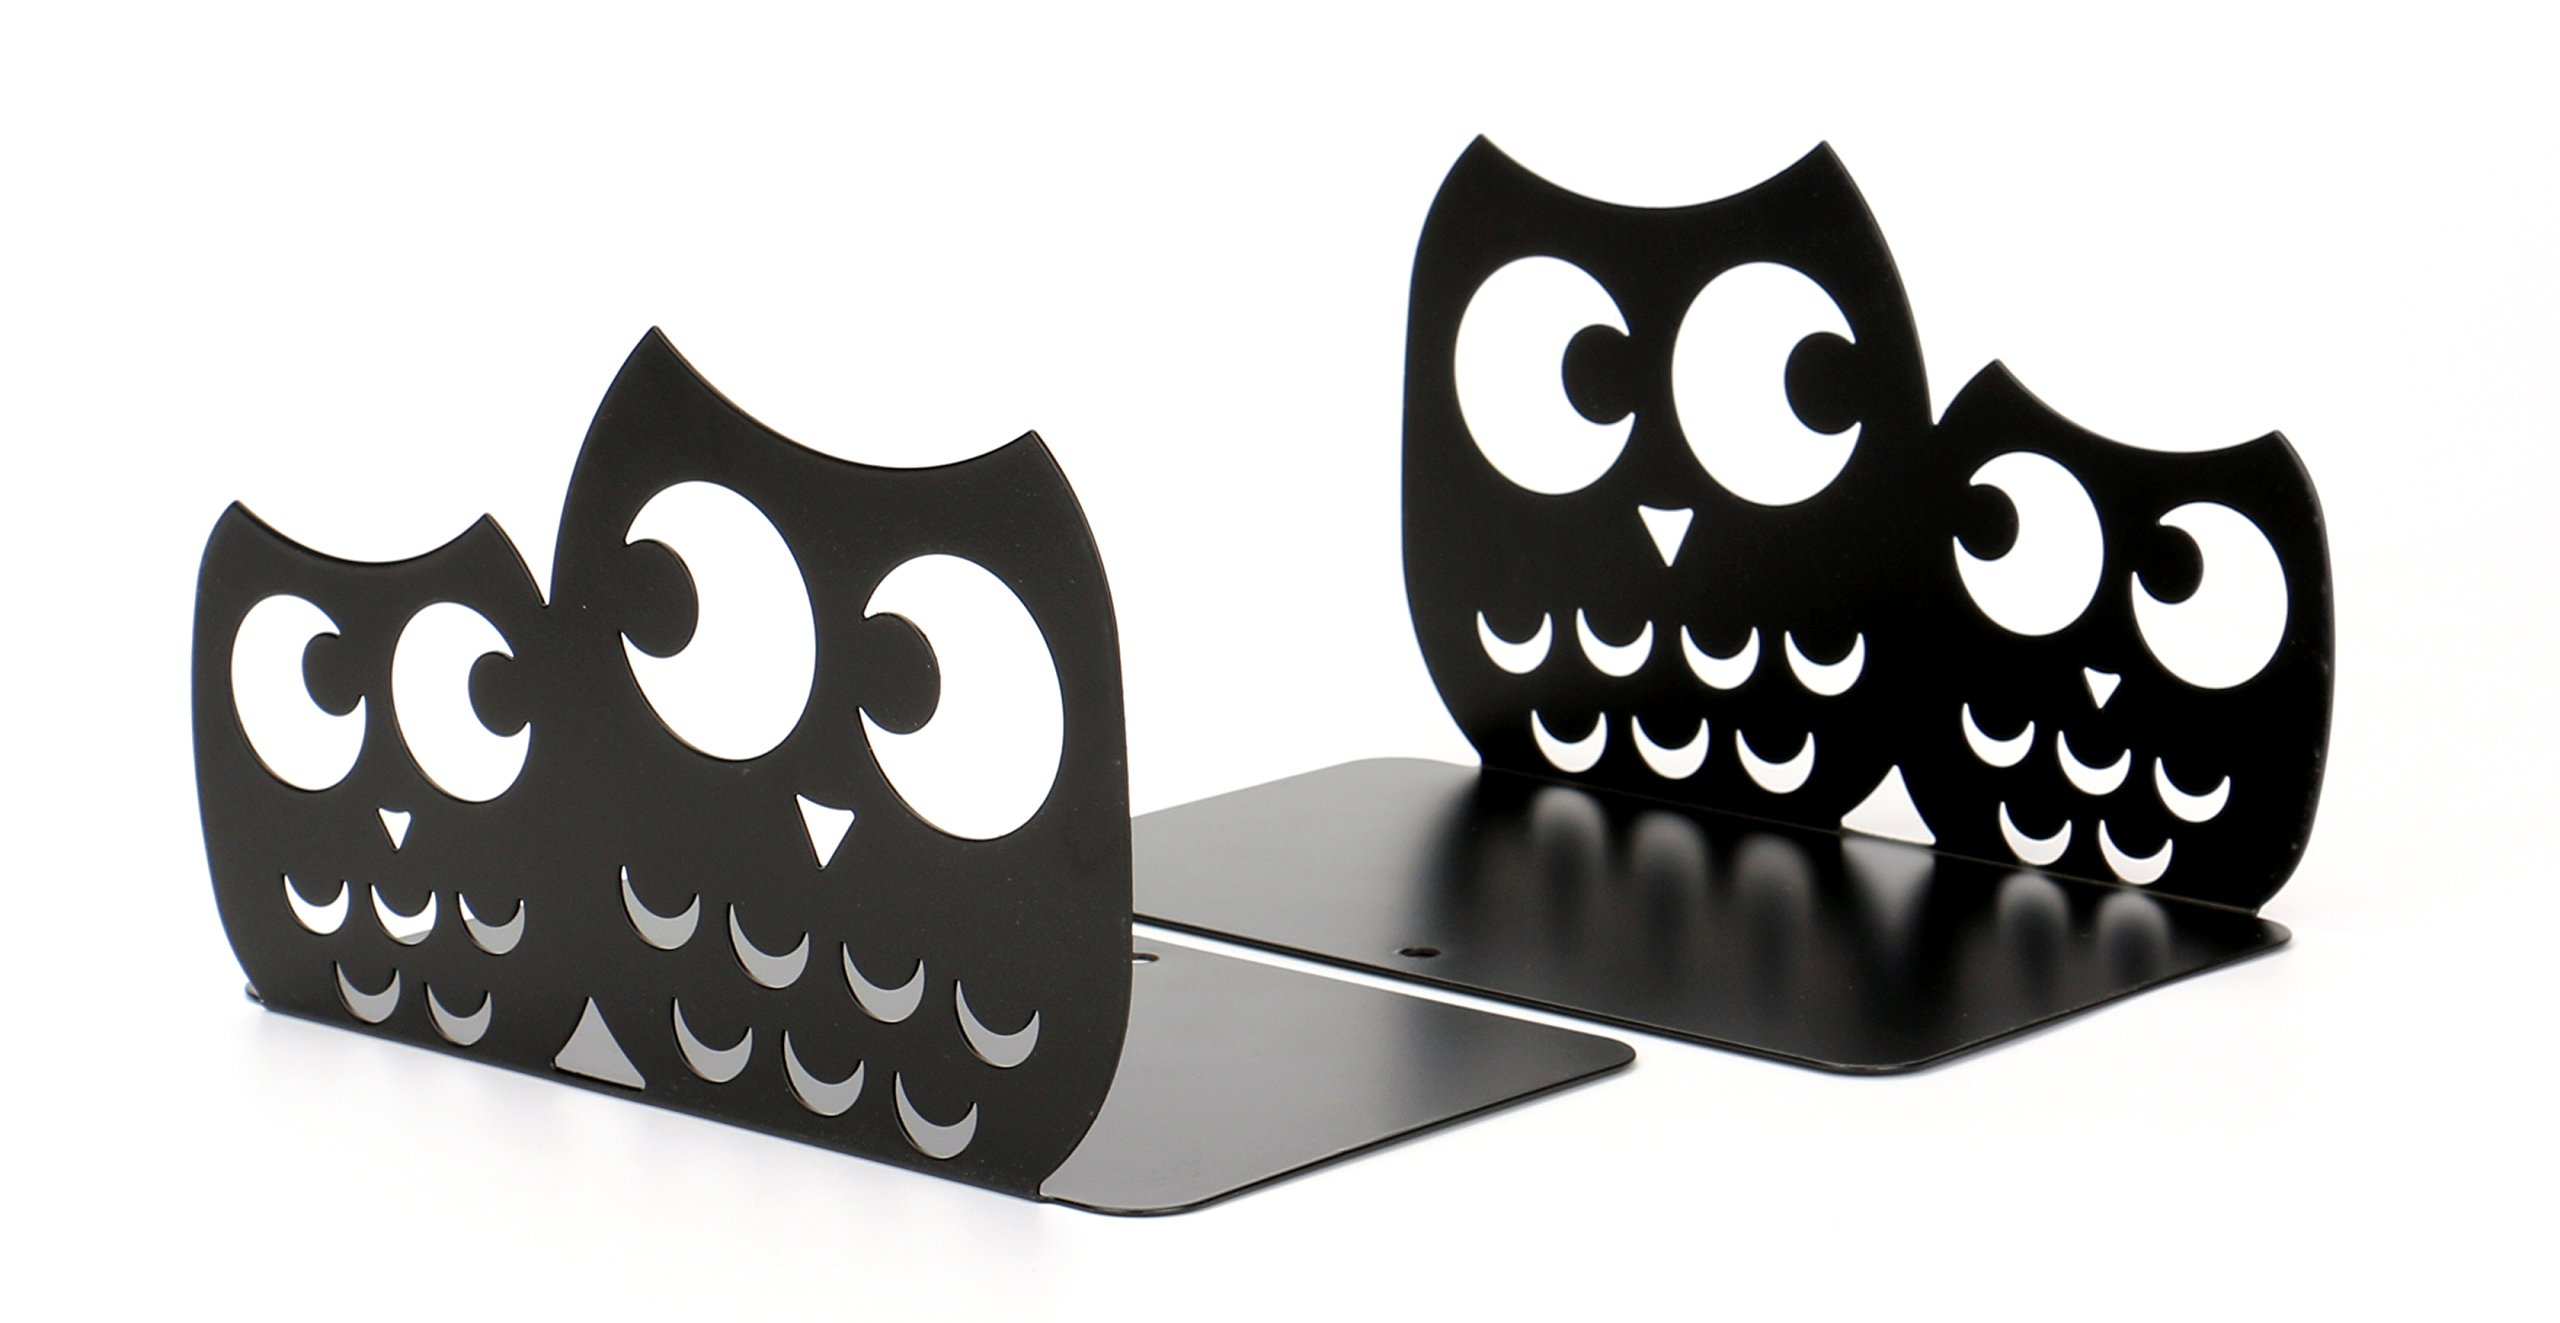 Fasmov Owls Nonskid Bookends Cute Bookends Art Bookends,1 Pair (Black) by Fasmov